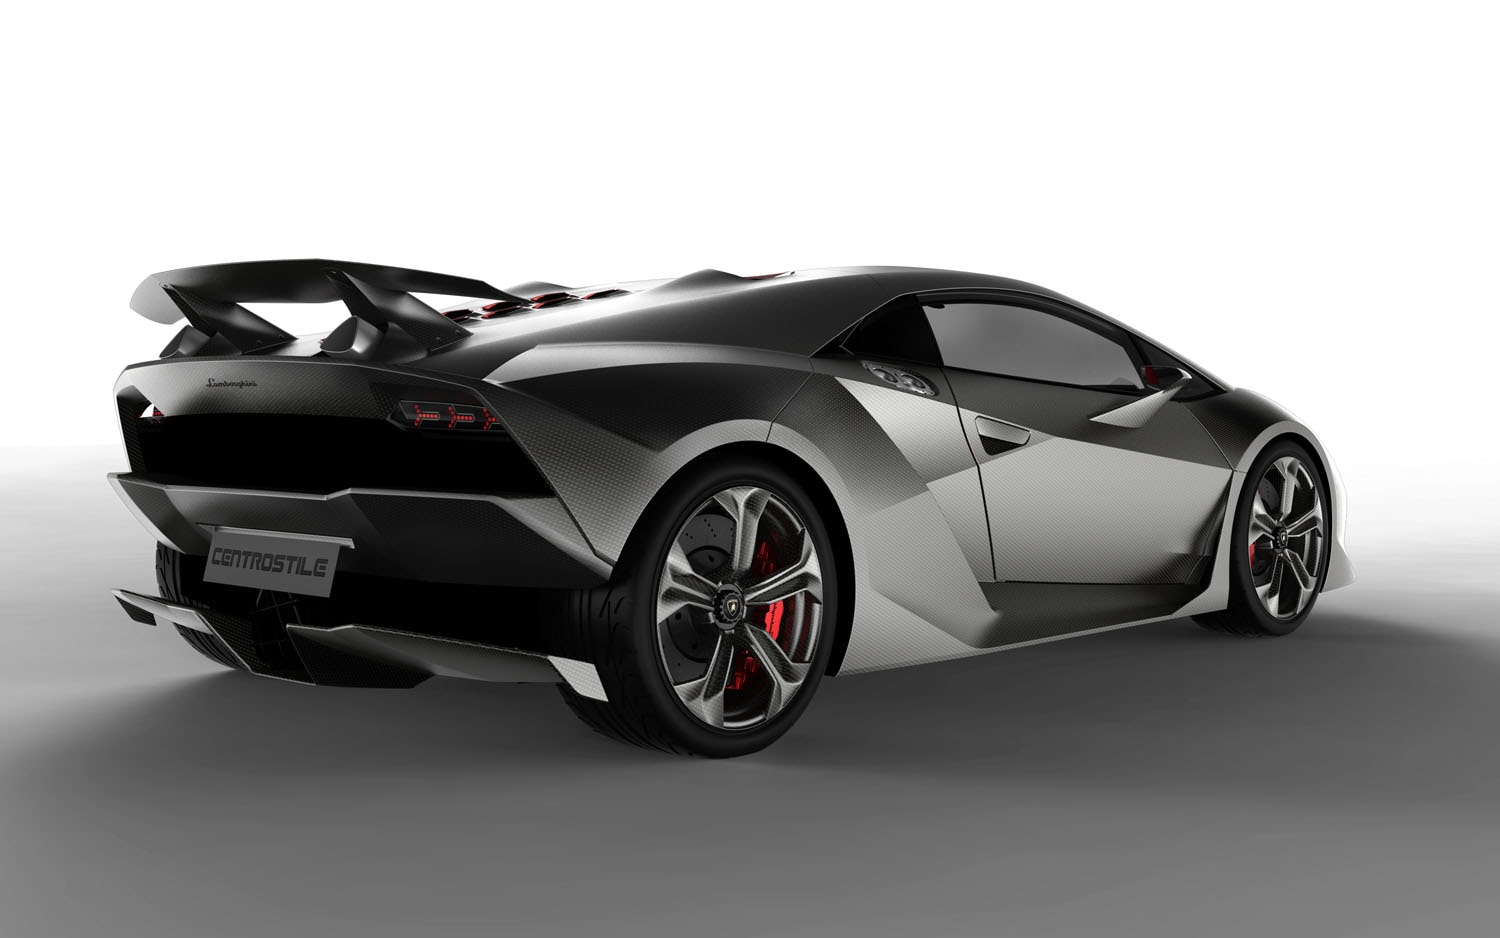 2013 Lamborghini Sesto Elemento Rear Three Quarter